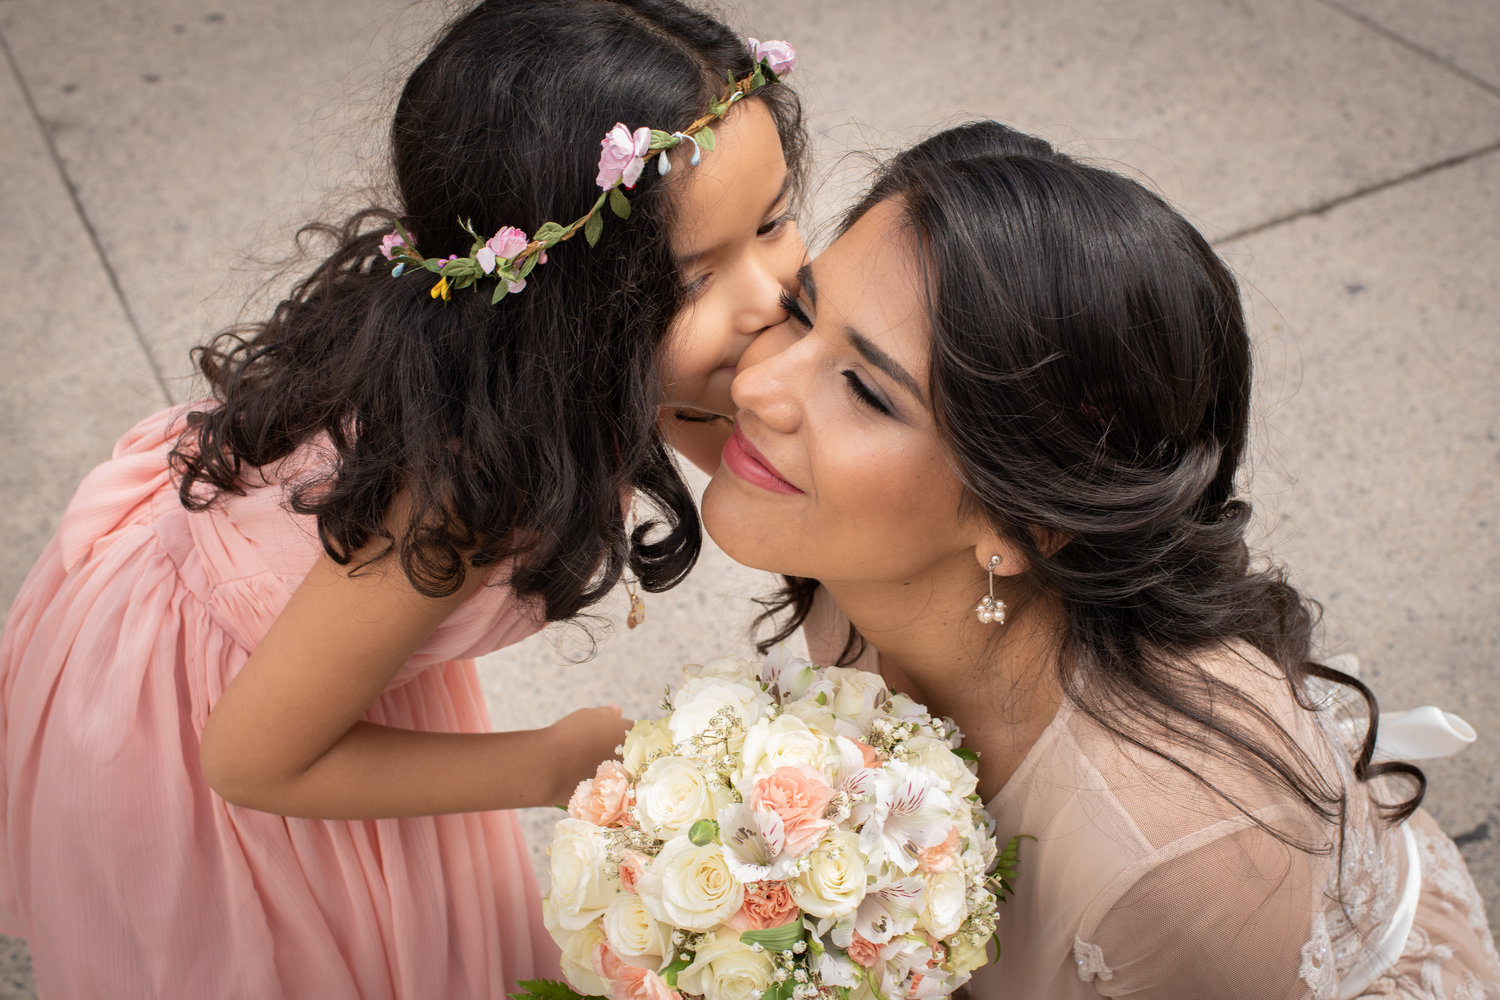 Kisses for the bride.